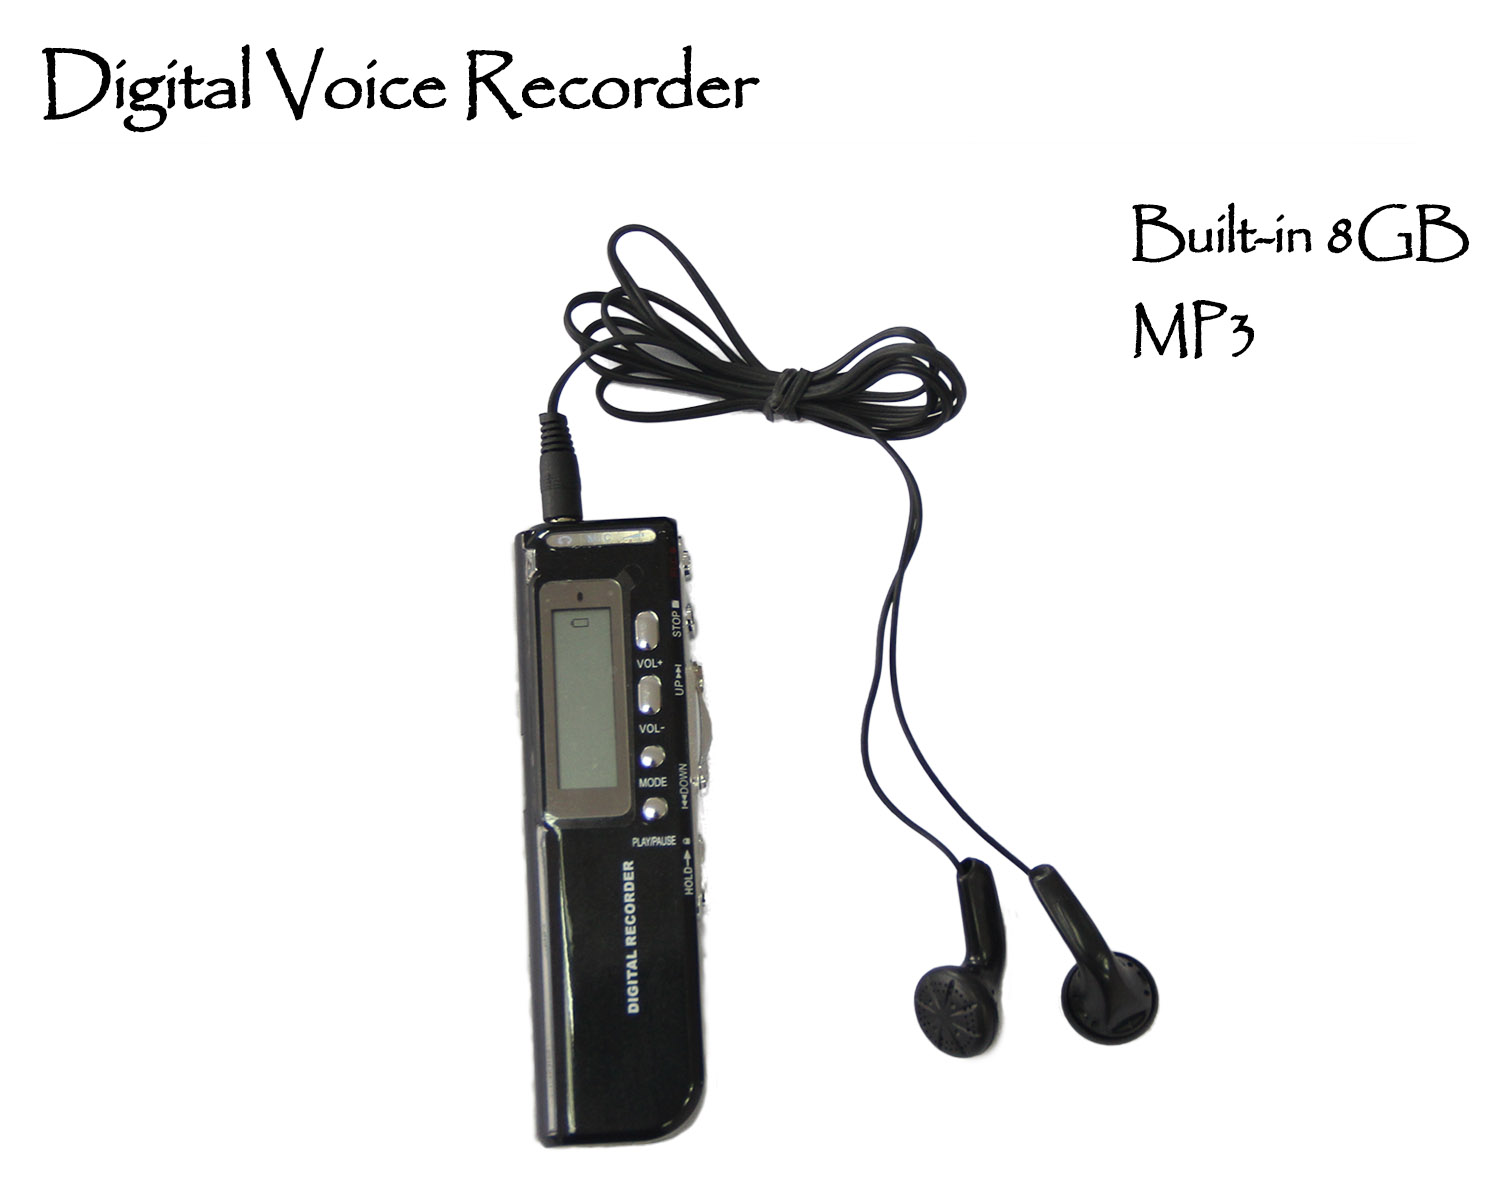 Tragbares Audio & Video Professioneller Verkauf 18 Stunden Aufnahme 8 Gb Digital Voice Recorder Pen Tm-010 Diktiergerät Mini Voice Record Für Meetings Lessons Gravador Hochglanzpoliert Digital Voice Recorder